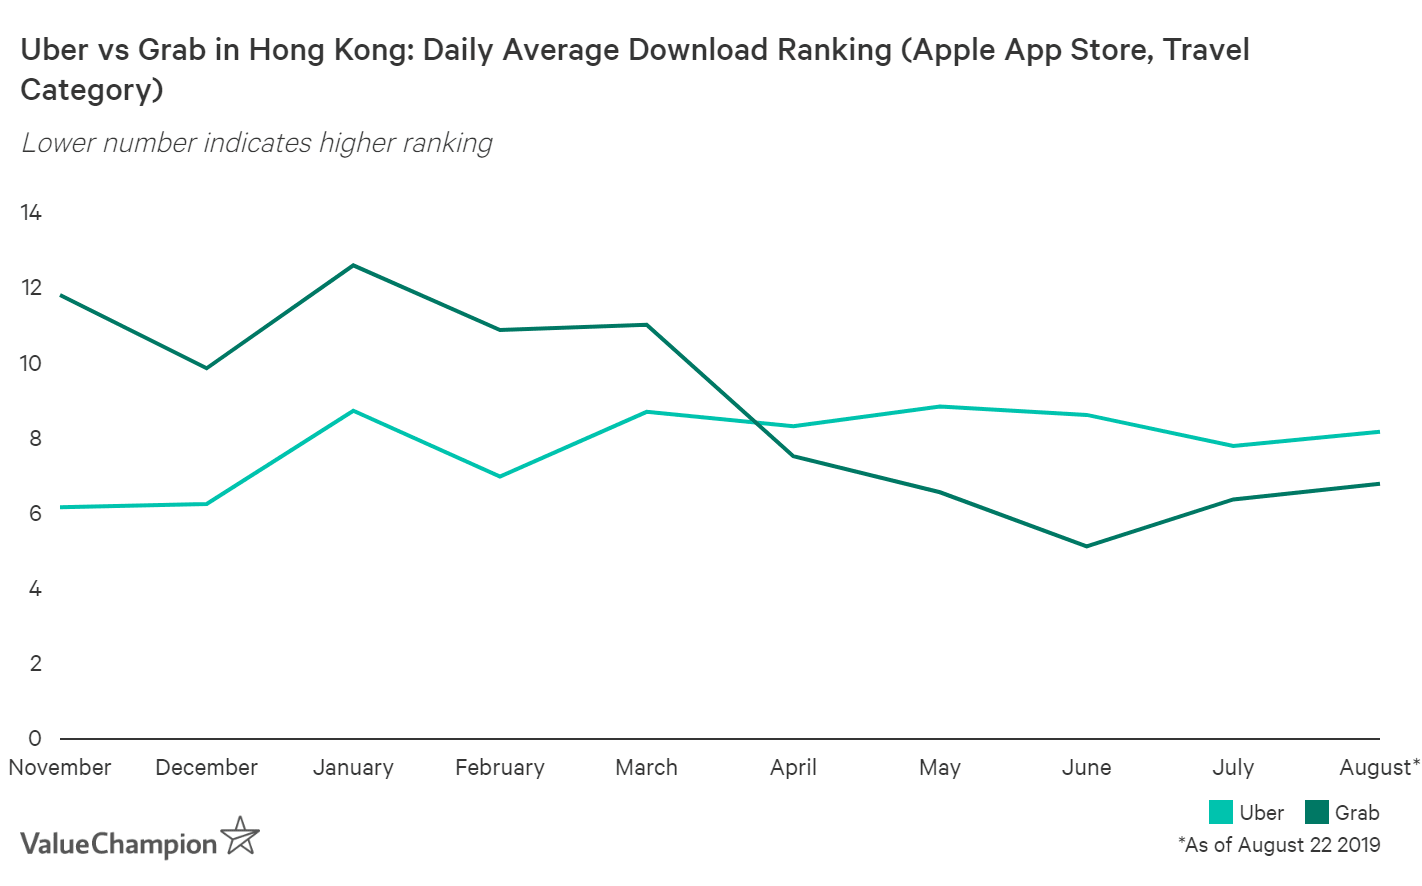 Grab has been getting more downloads than Uber in Hong Kong since April, despite the fact that Grab doesn't even operate in the region